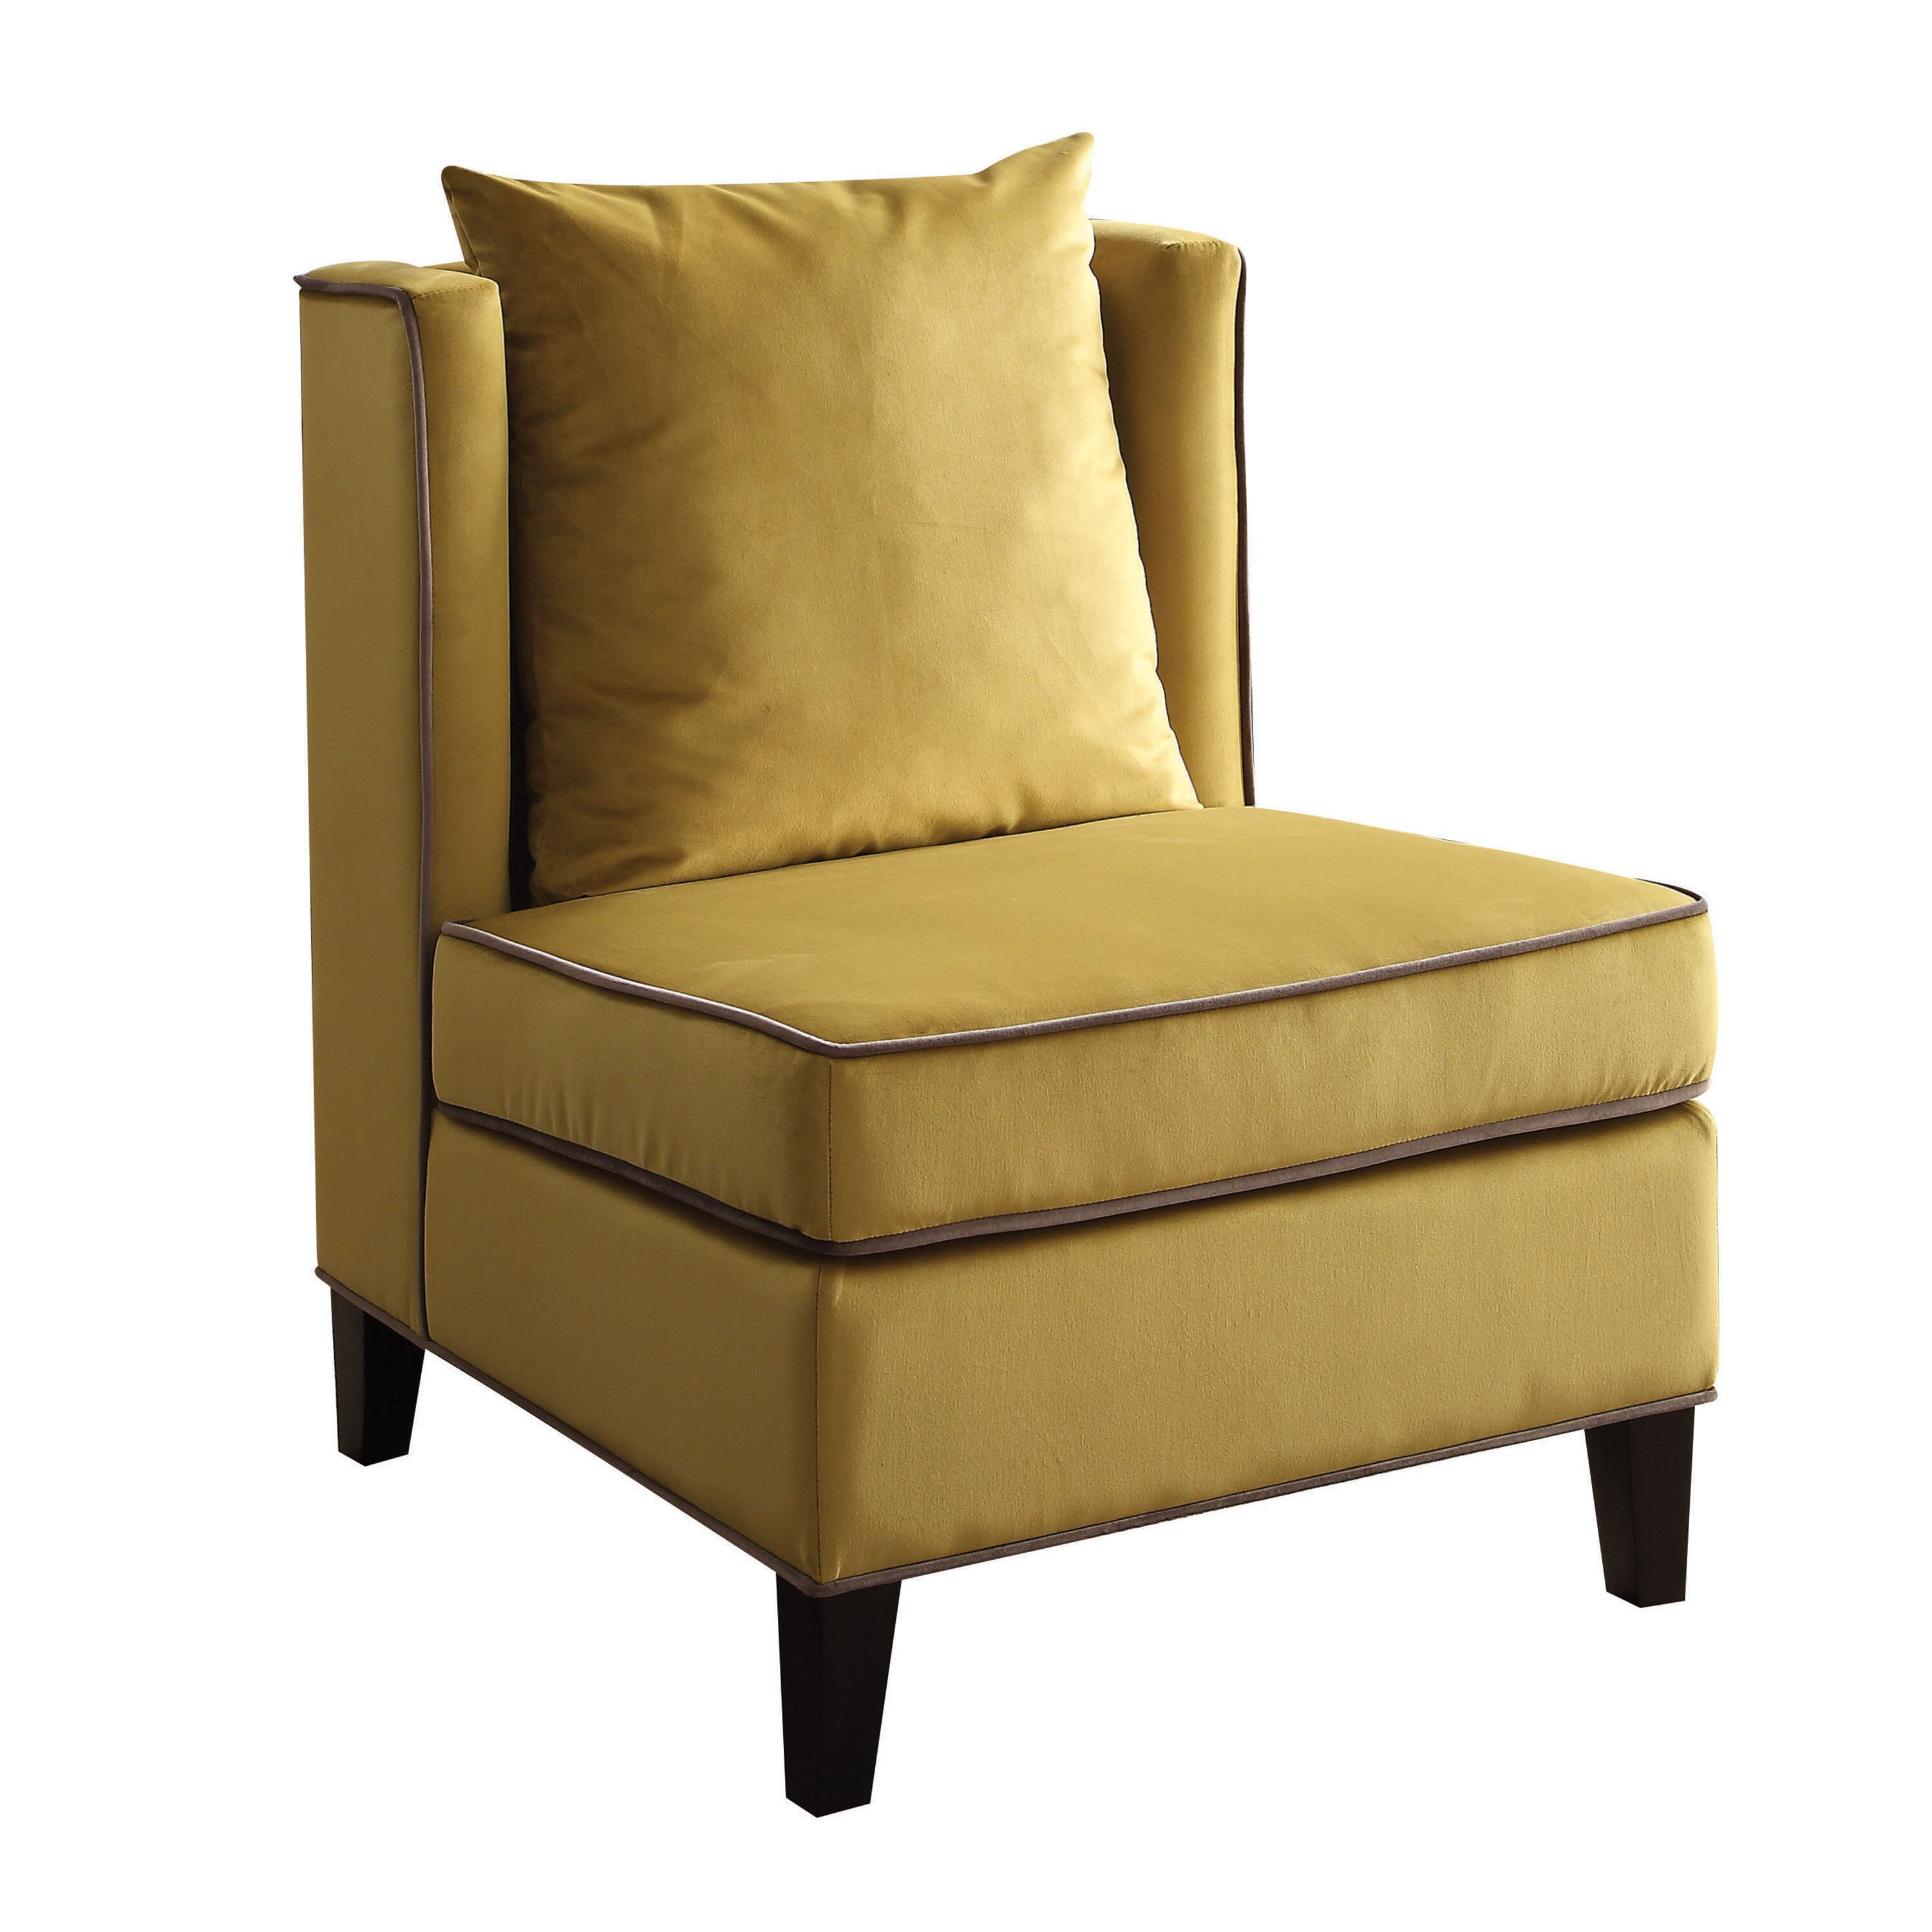 ACME Furniture Ozella Slipper Chair U0026 Reviews | Wayfair